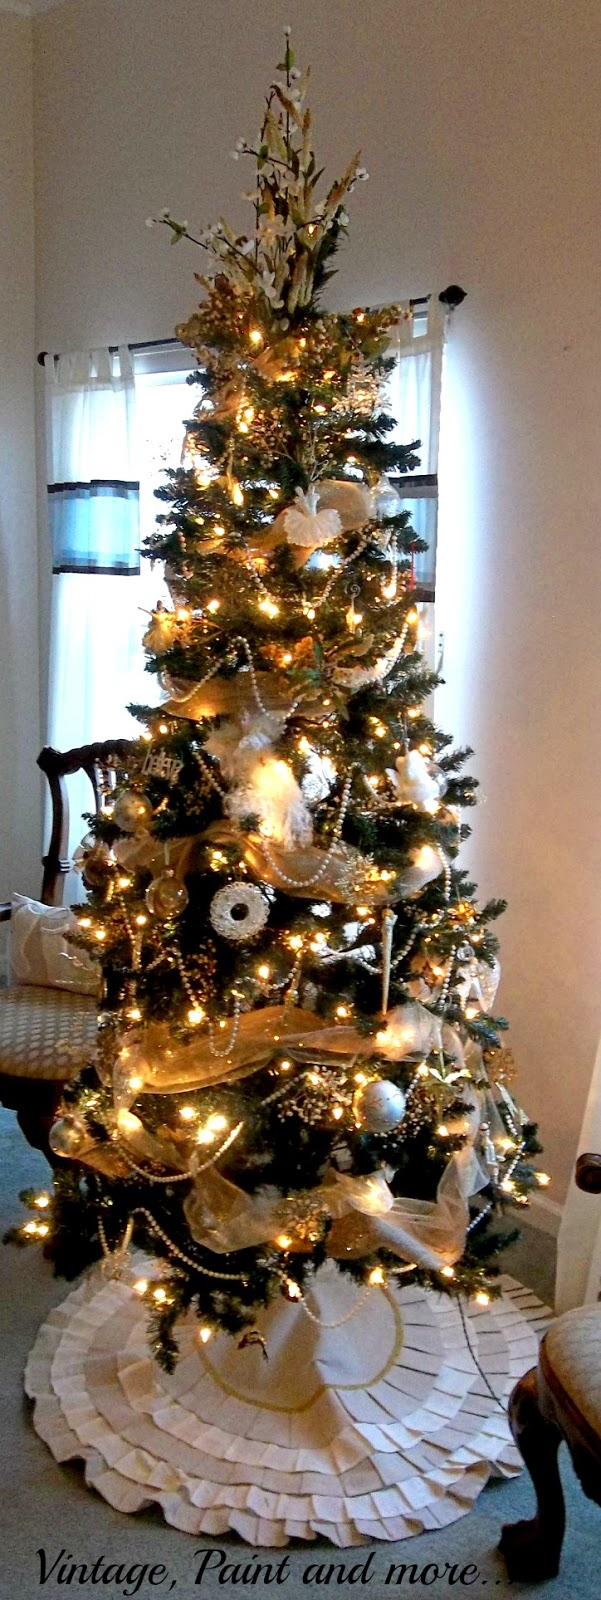 Vintage, Paint and more... neutral Christmas tree with gold and white handcrafted and dollar store ornaments